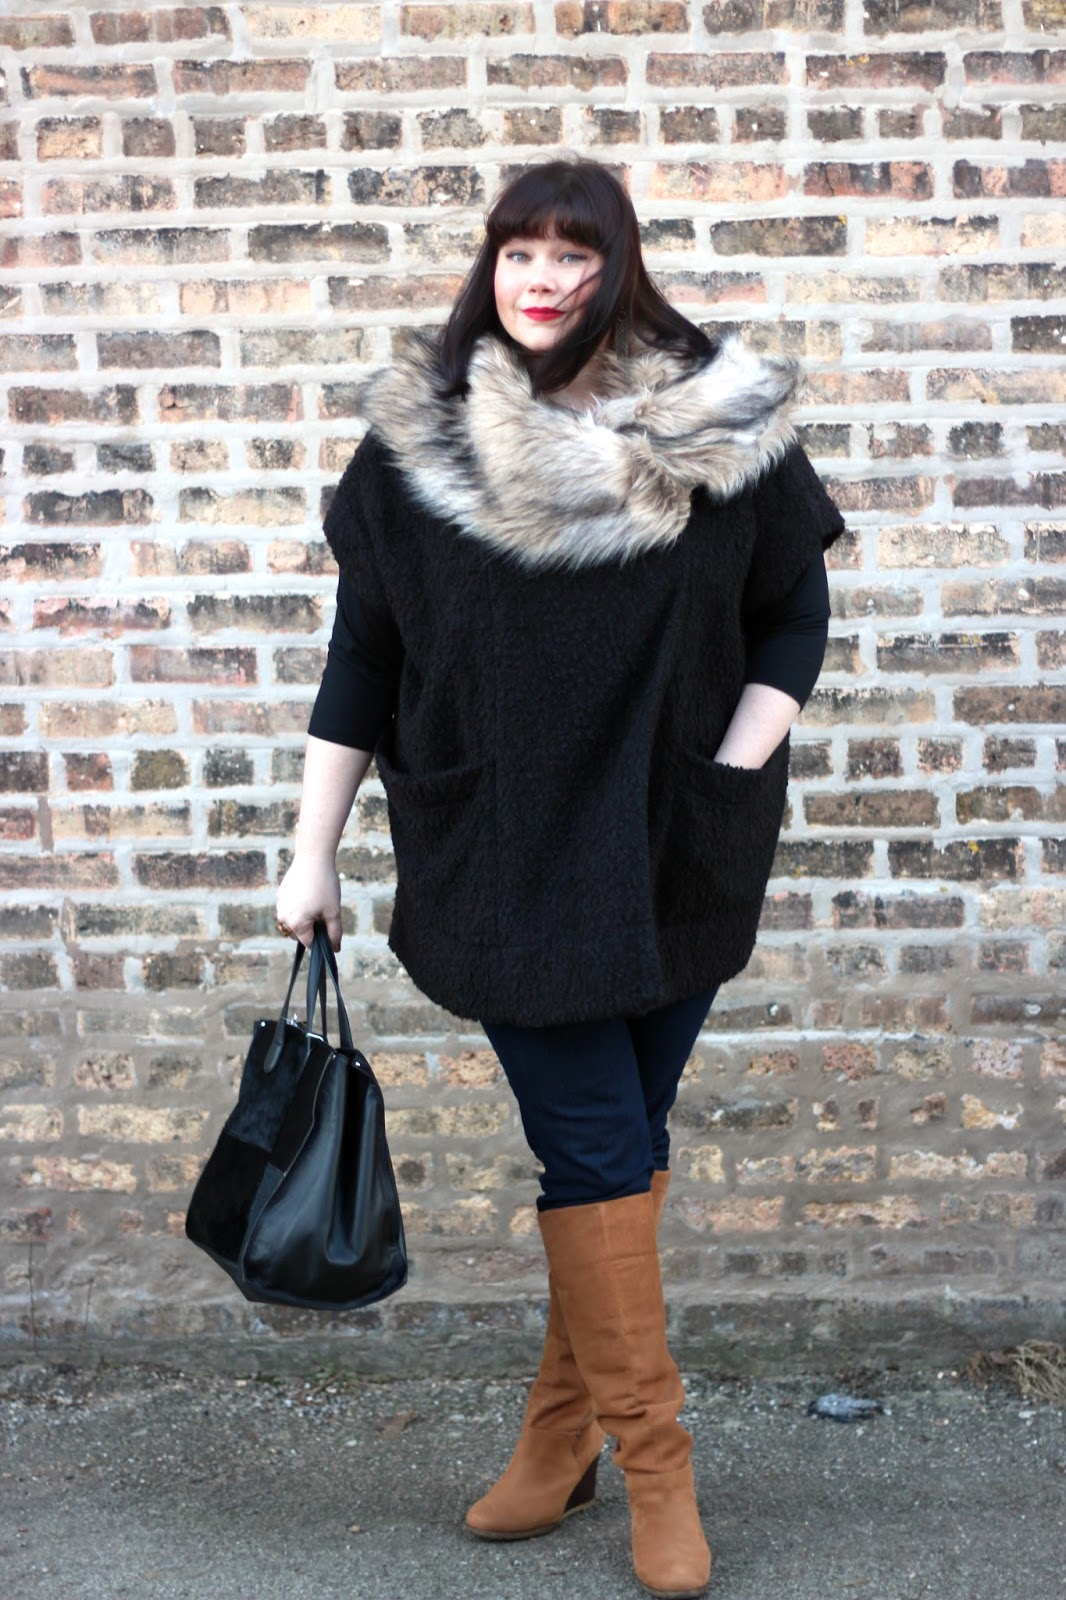 plus size winter outfit Archives | Style Plus Curves - A ...